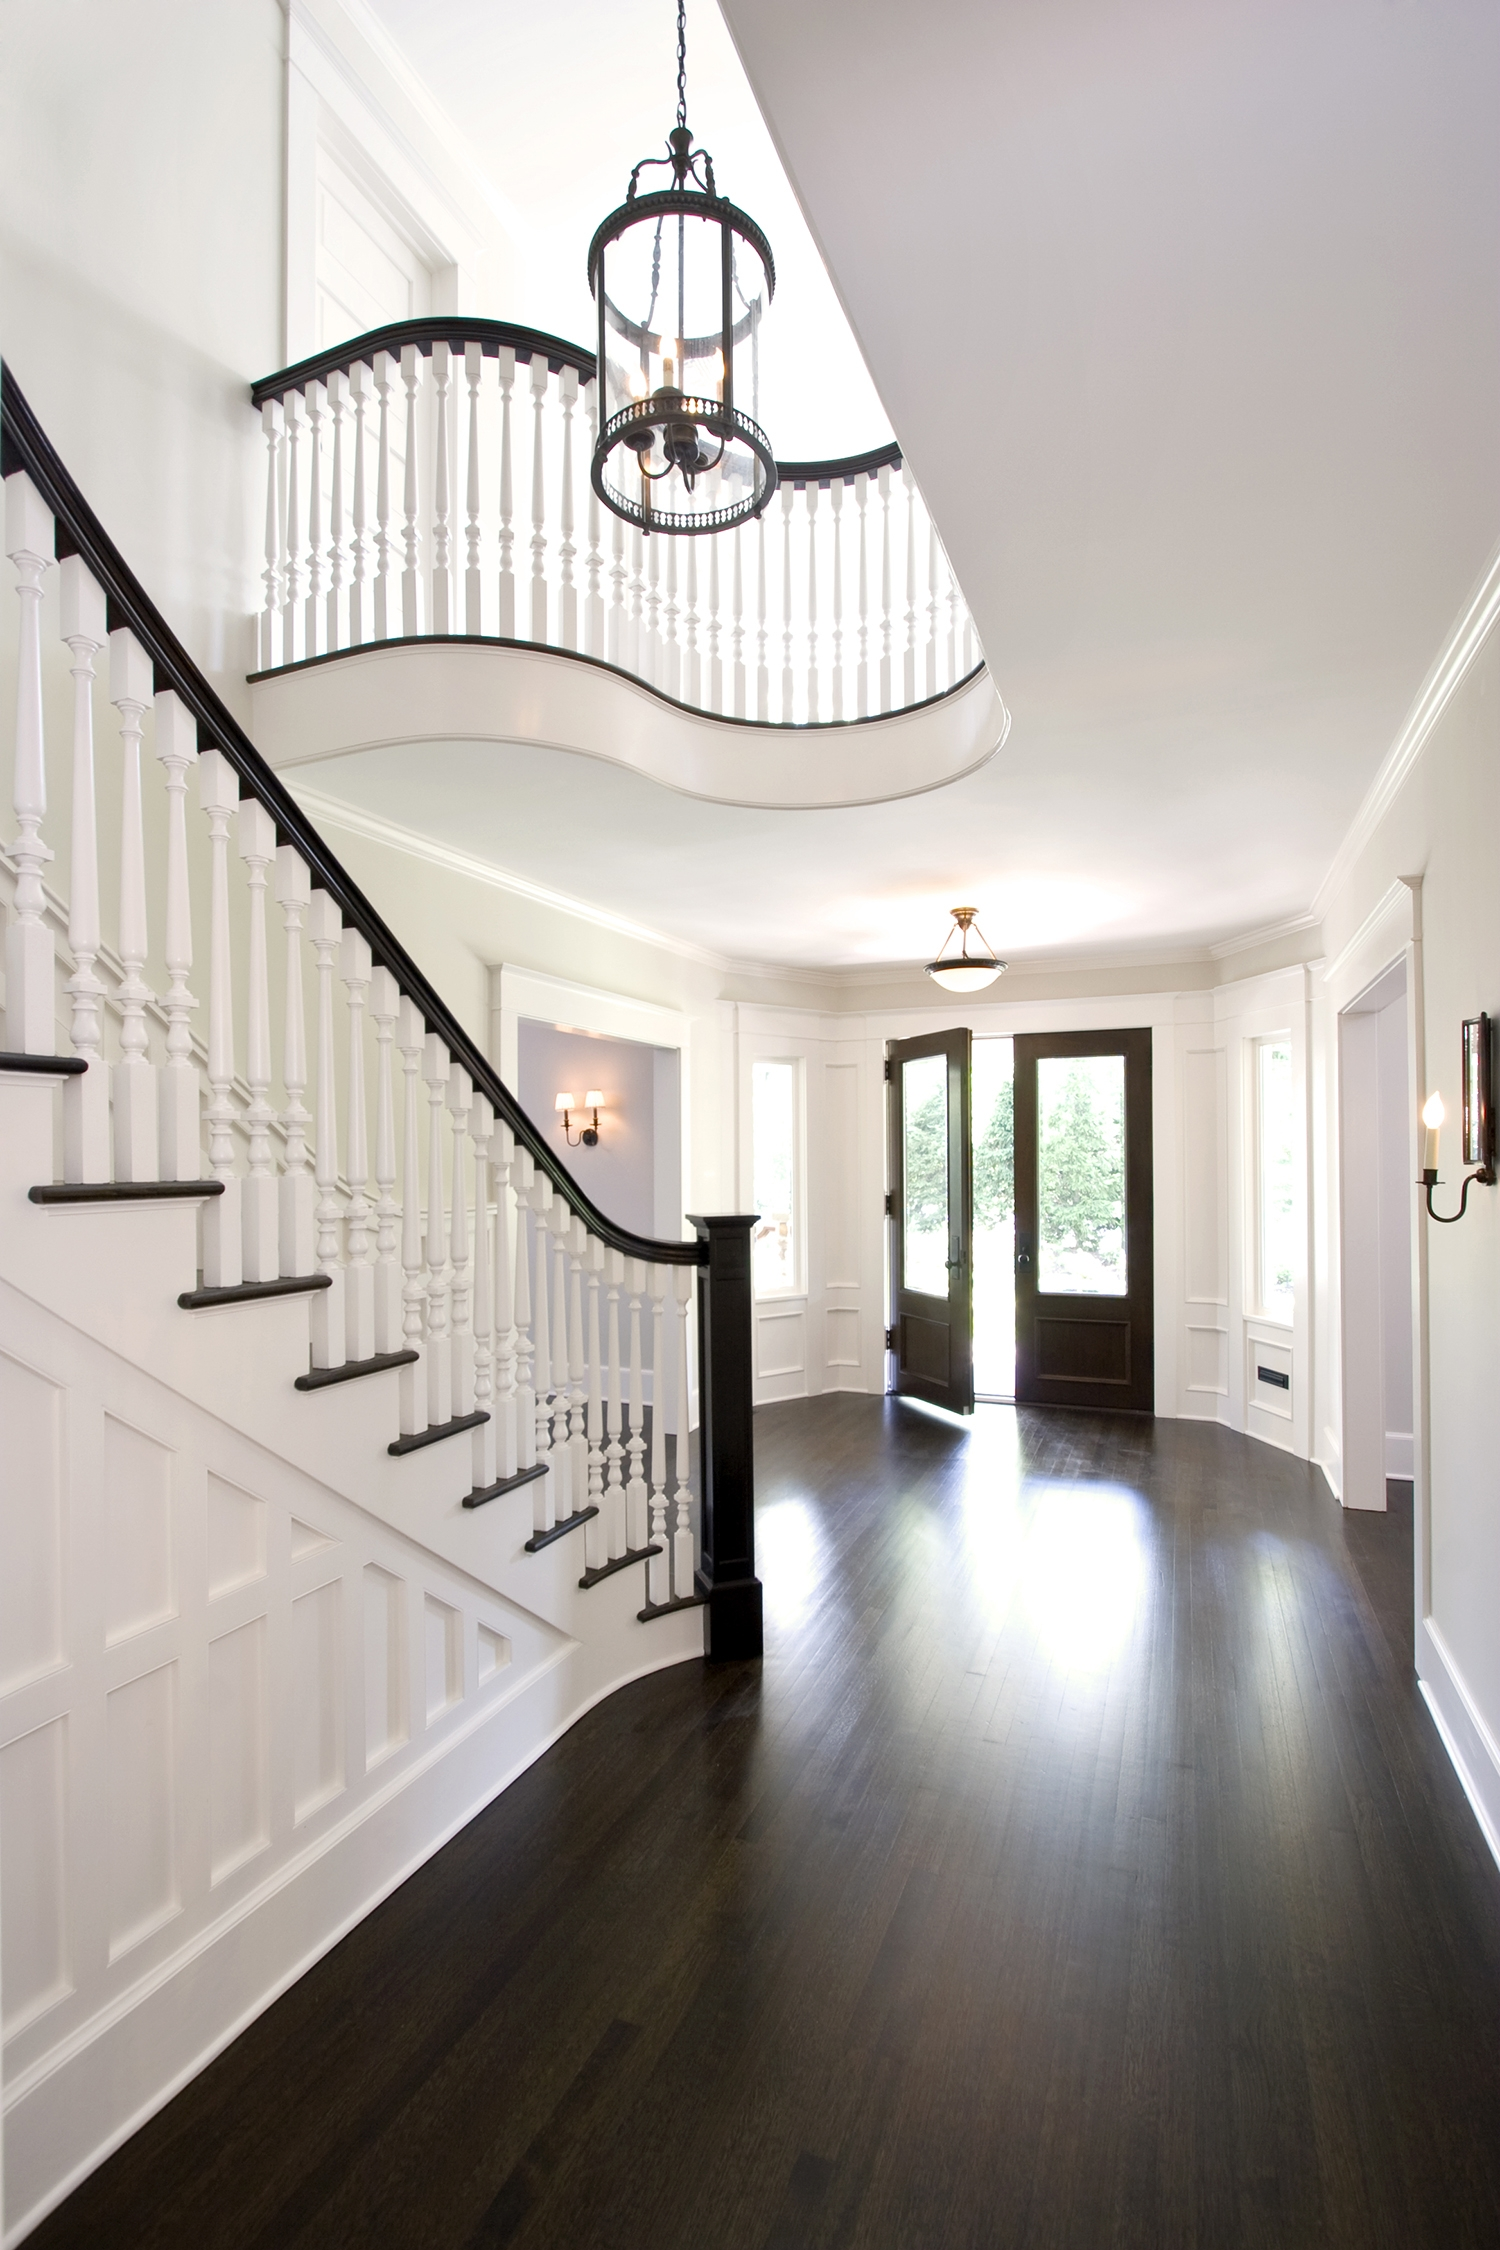 Aia Gold Medal Winner Re Envisioned Stair Hall I Ridgewood Nj | Front Side Staircase Design | Ground Floor Tower | Gallery Photo Indian | Parapet Wall Front | Italian Type House | Residential Stair Tower